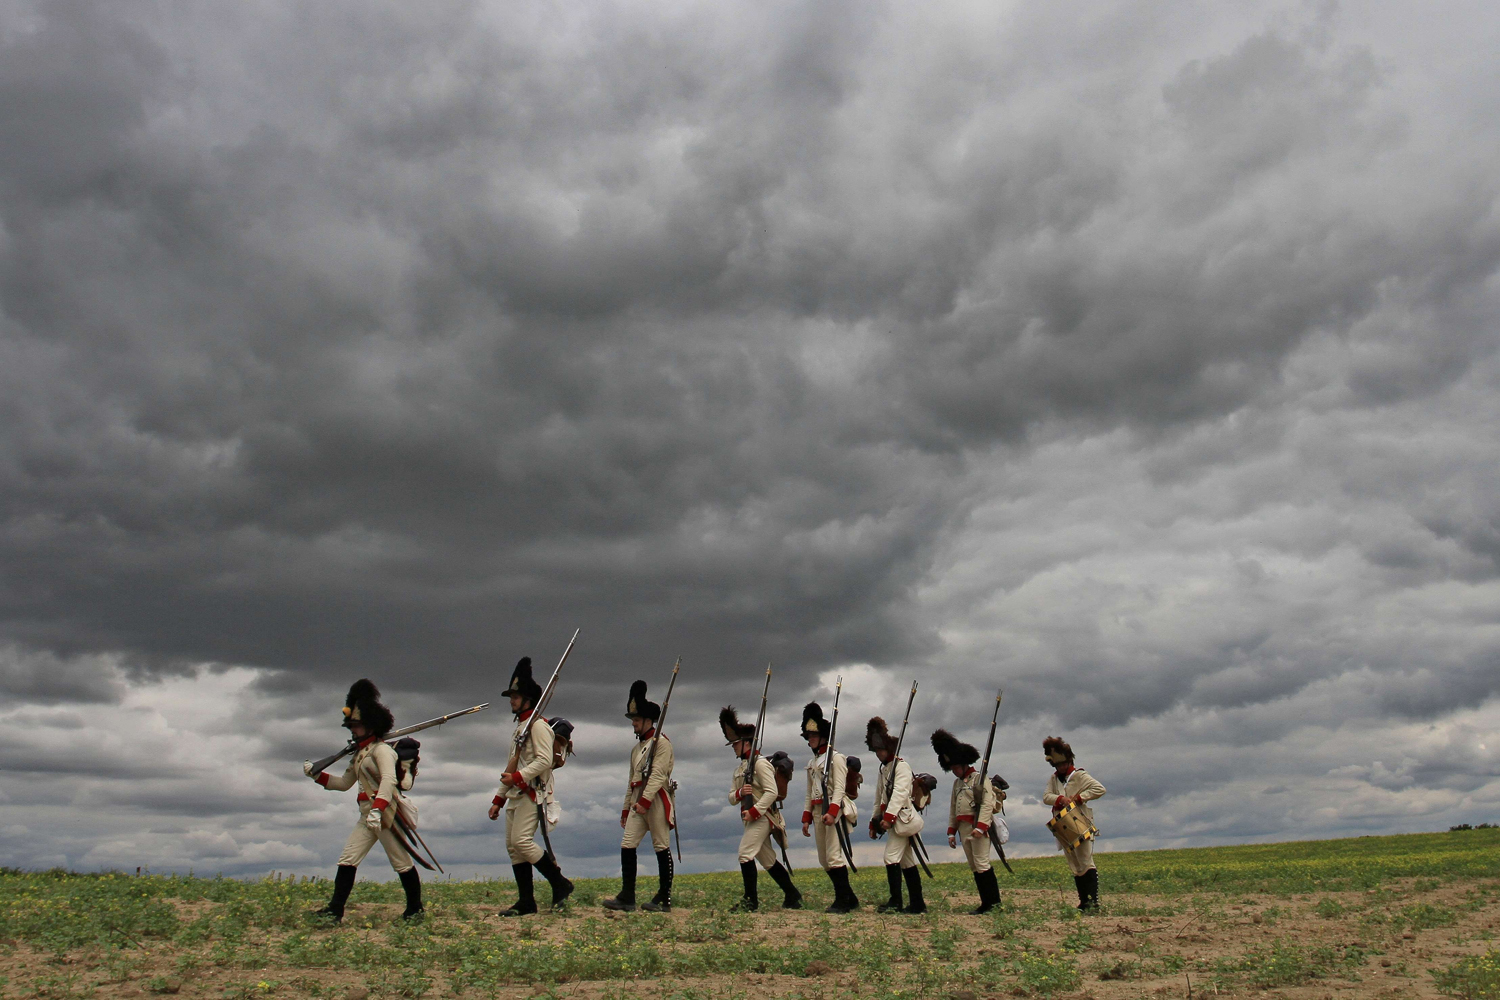 Jul. 10, 2014. Participants dressed as soldiers of the Austrian Empire fire their guns as they take part in the reenactment of the historic Napoleonic march from Seefeld-Kadolz, Austria to Dobsice, Czech Republic.